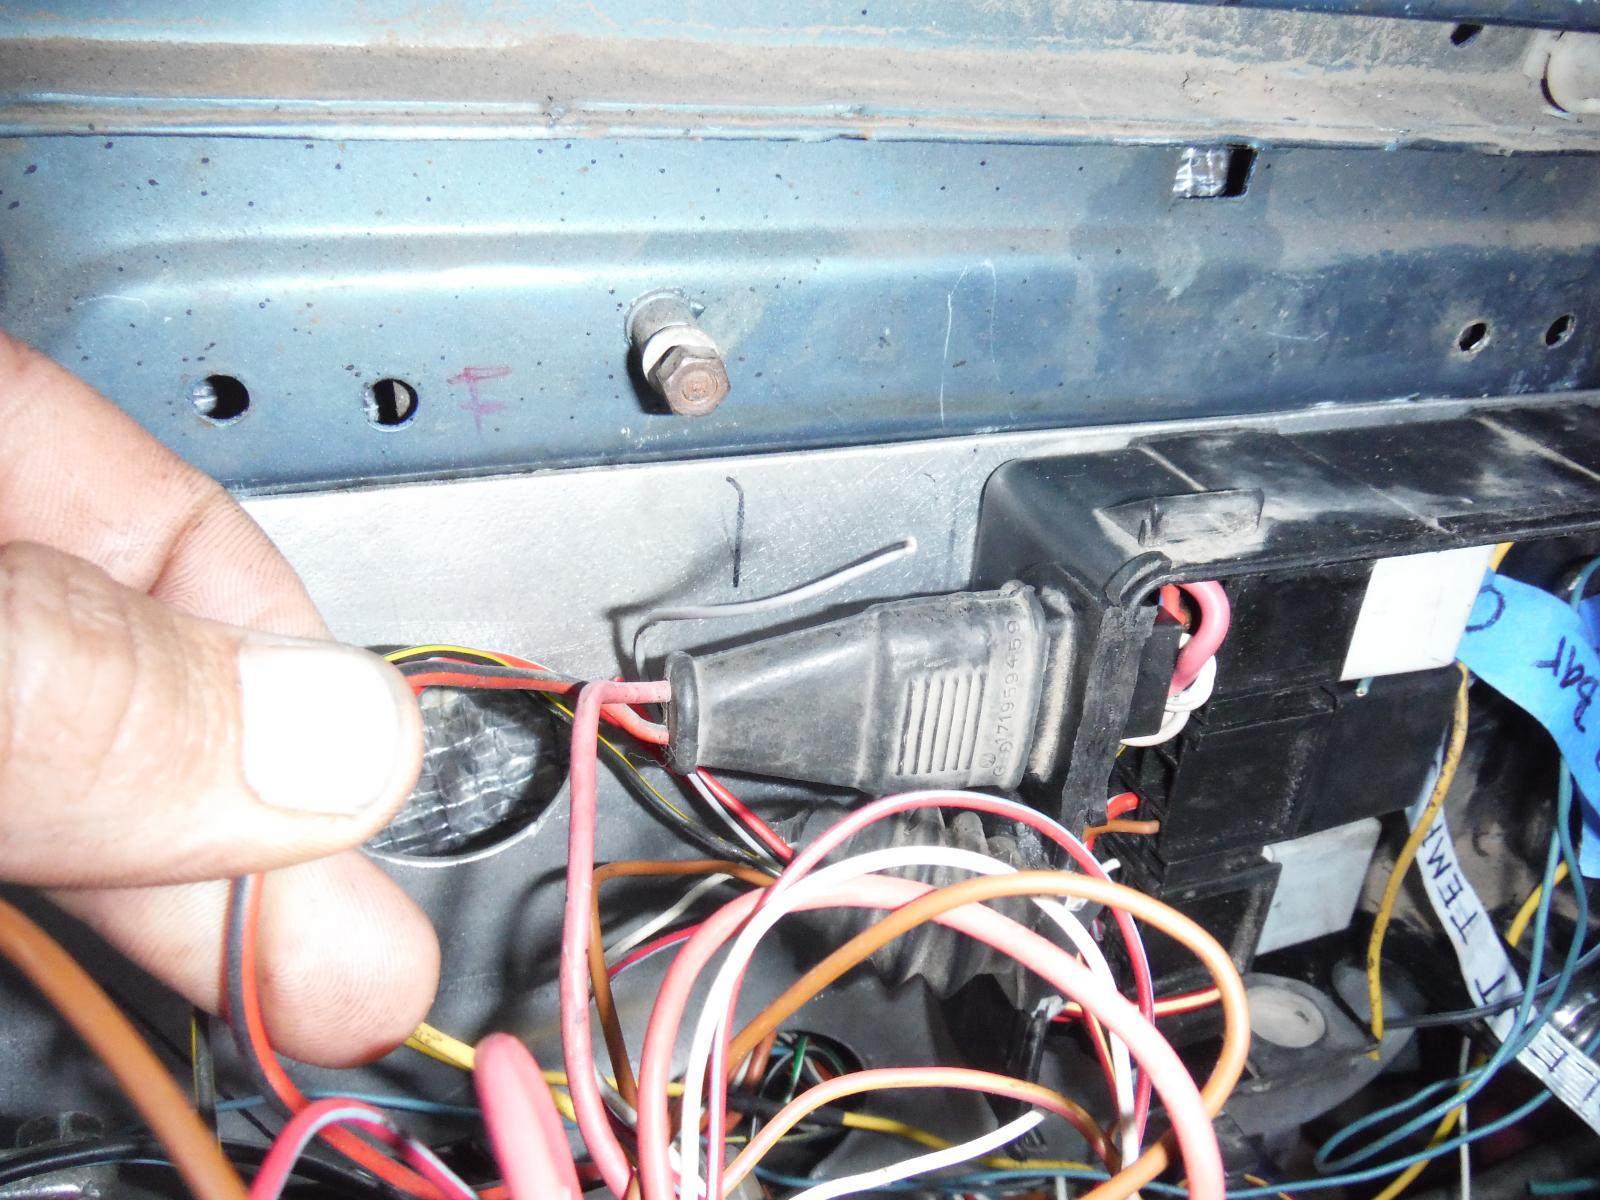 thesamba com vanagon view topic aba i4 wiring confusion help image have been reduced in size click image to view fullscreen